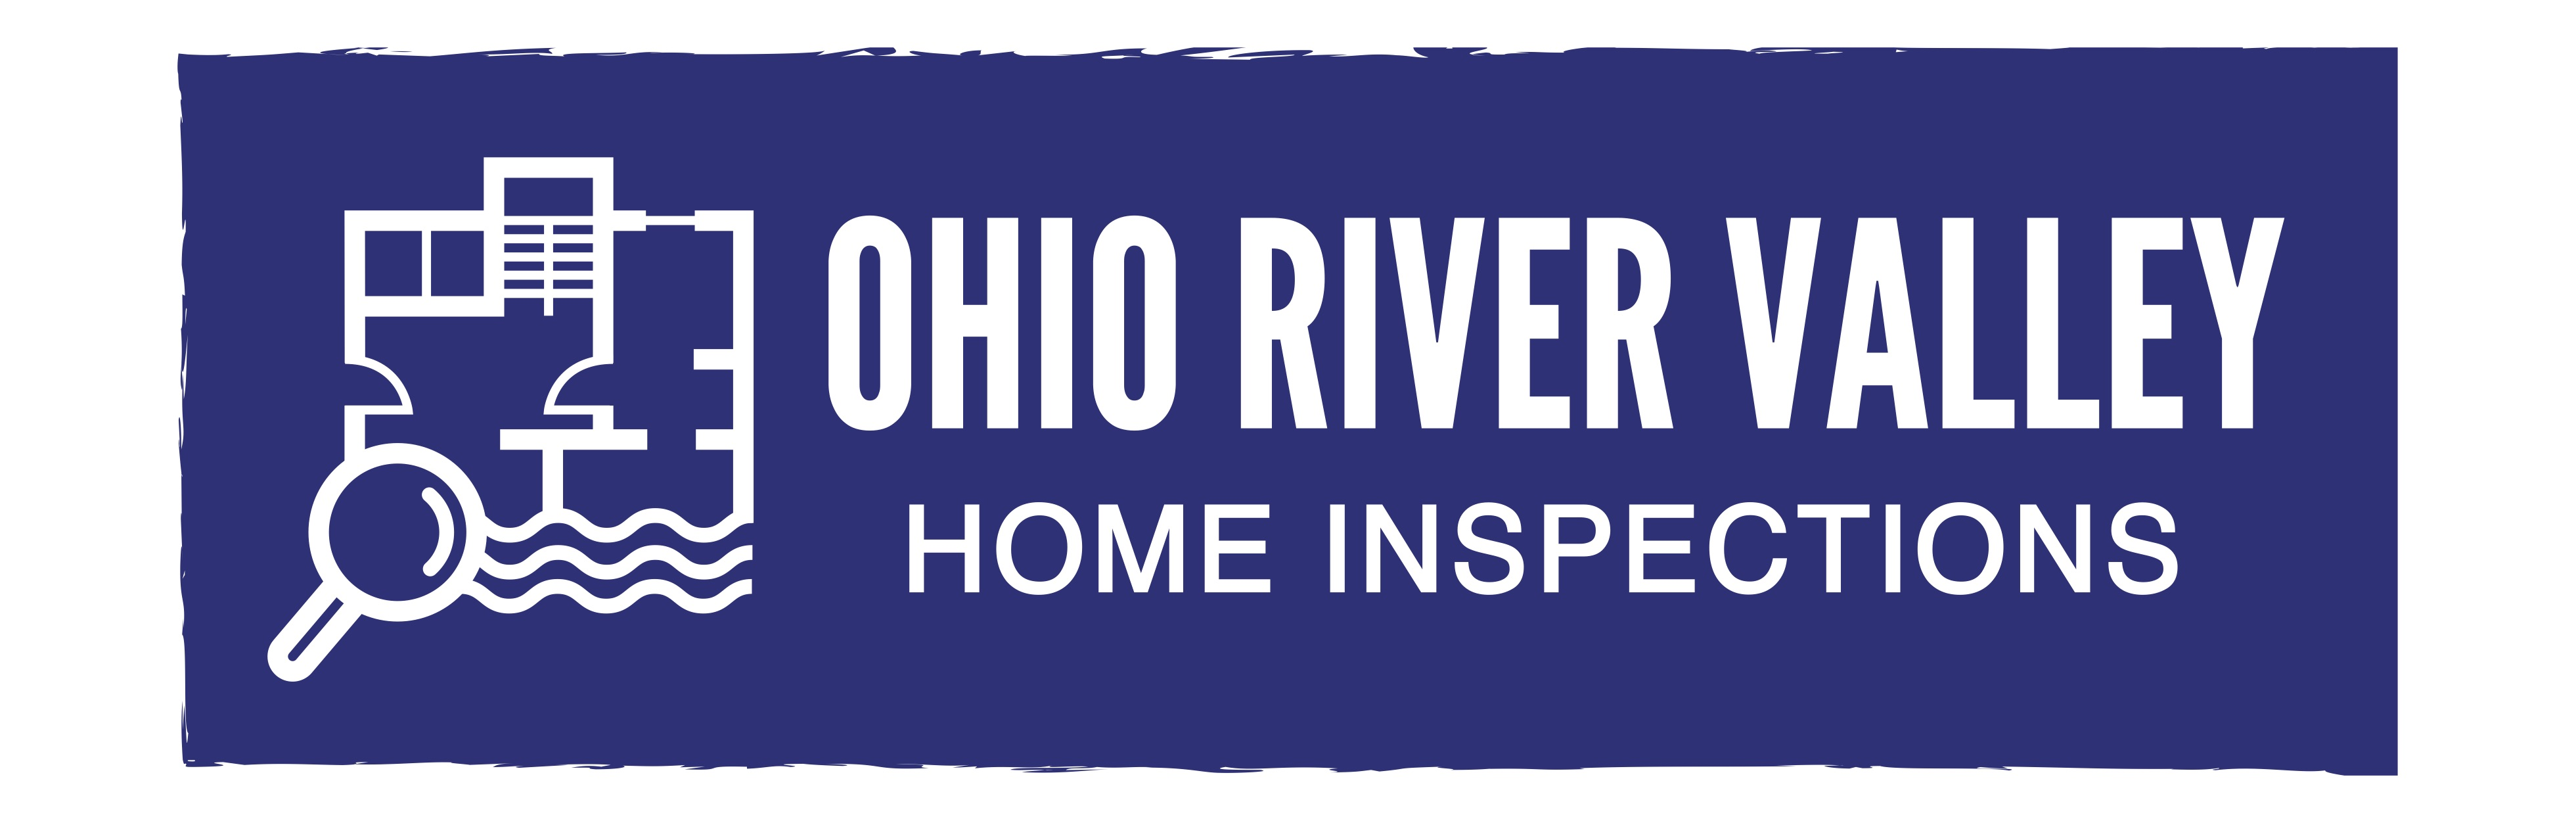 Ohio River Valley Home Inspections, LLC